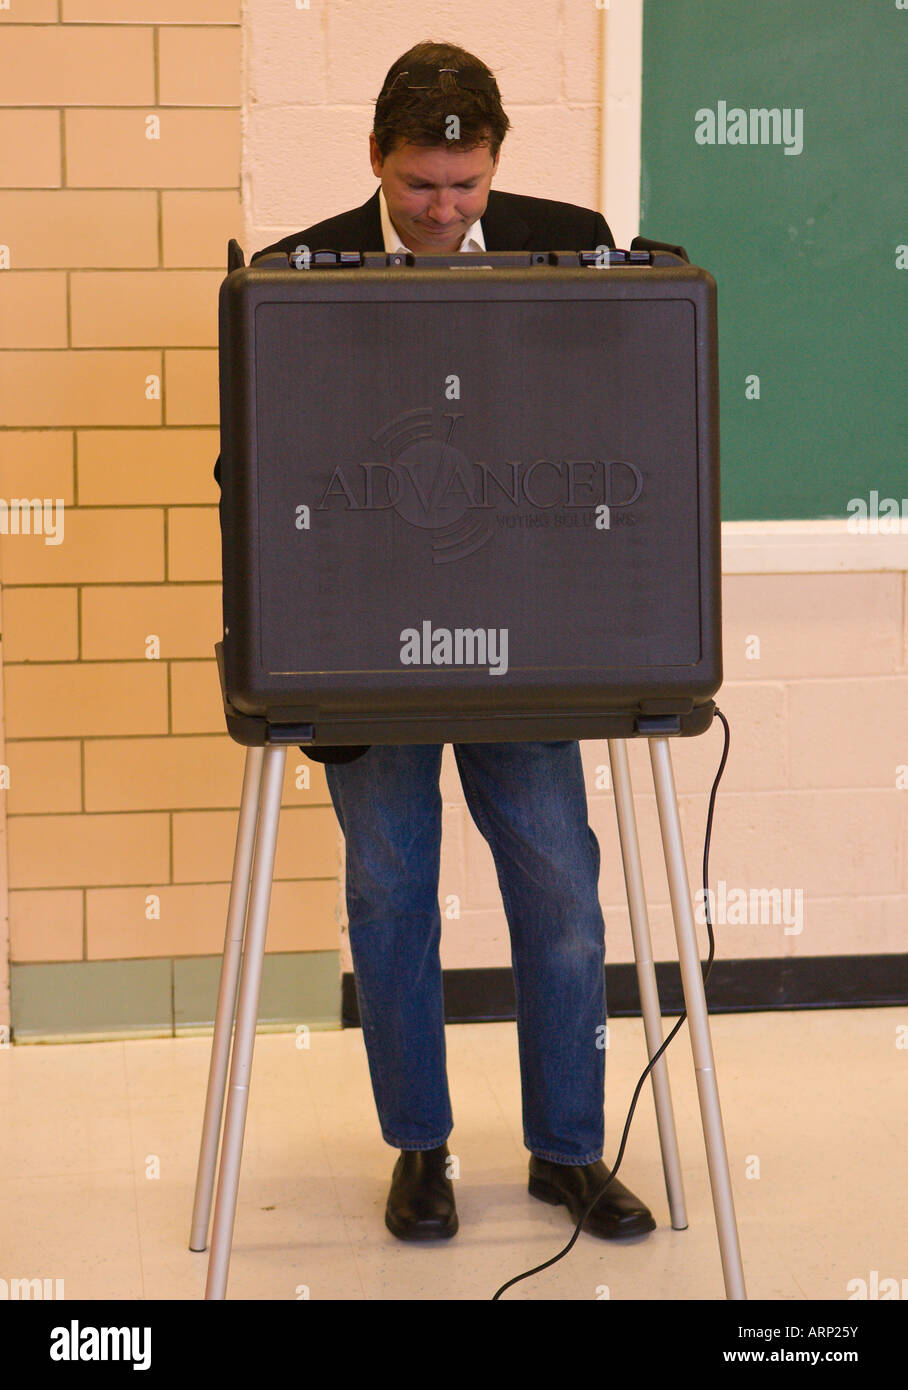 ARLINGTON, VIRGINIA USA Male voter casts ballot in presidential election using touch screen machines - Stock Image